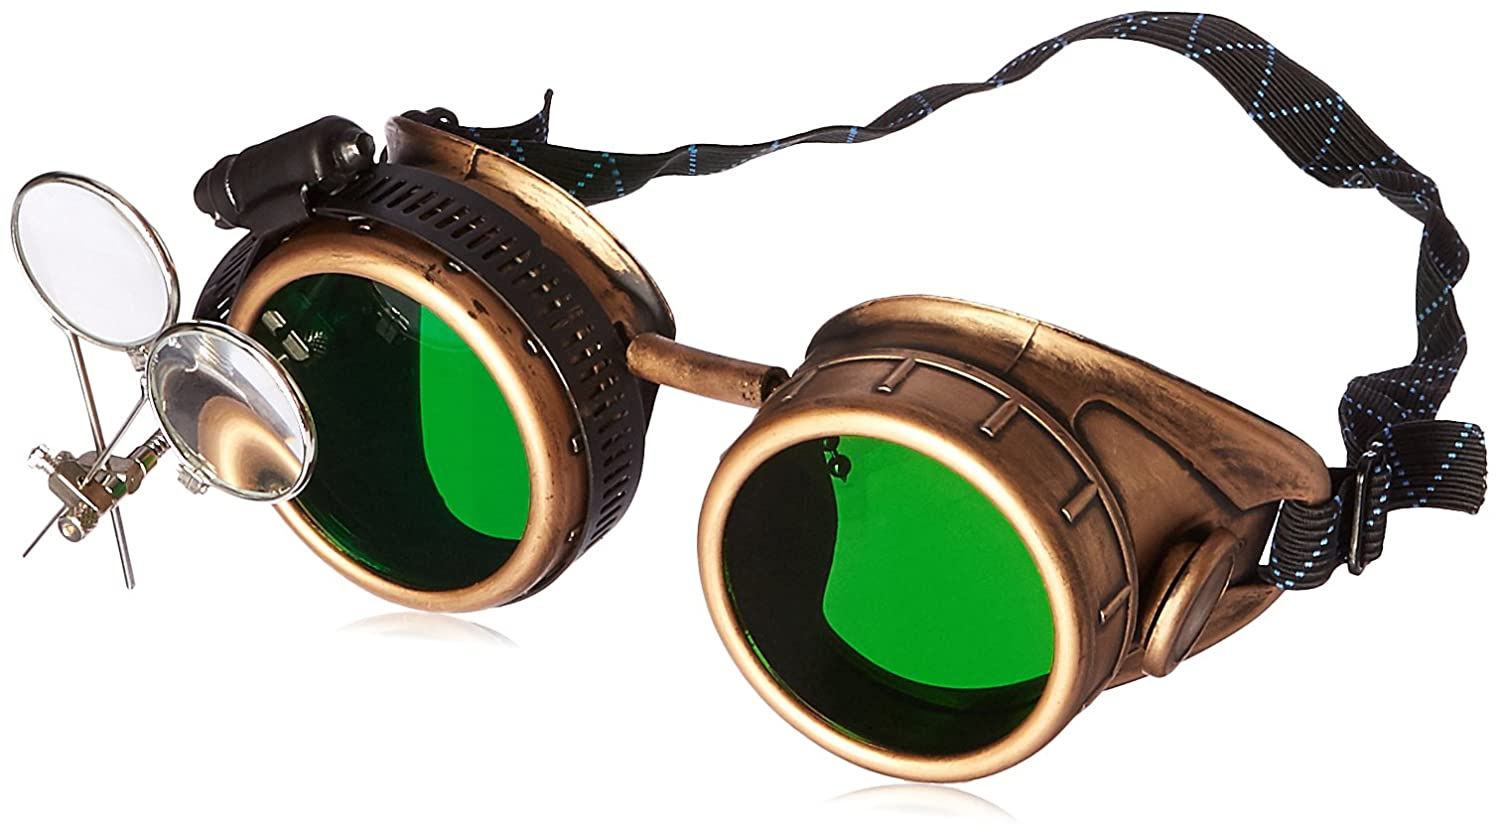 OldJunkyardBoutique Victorian Goggles Glasses Antique gold green lens with Double Clip on eye Loupe gold green 1x